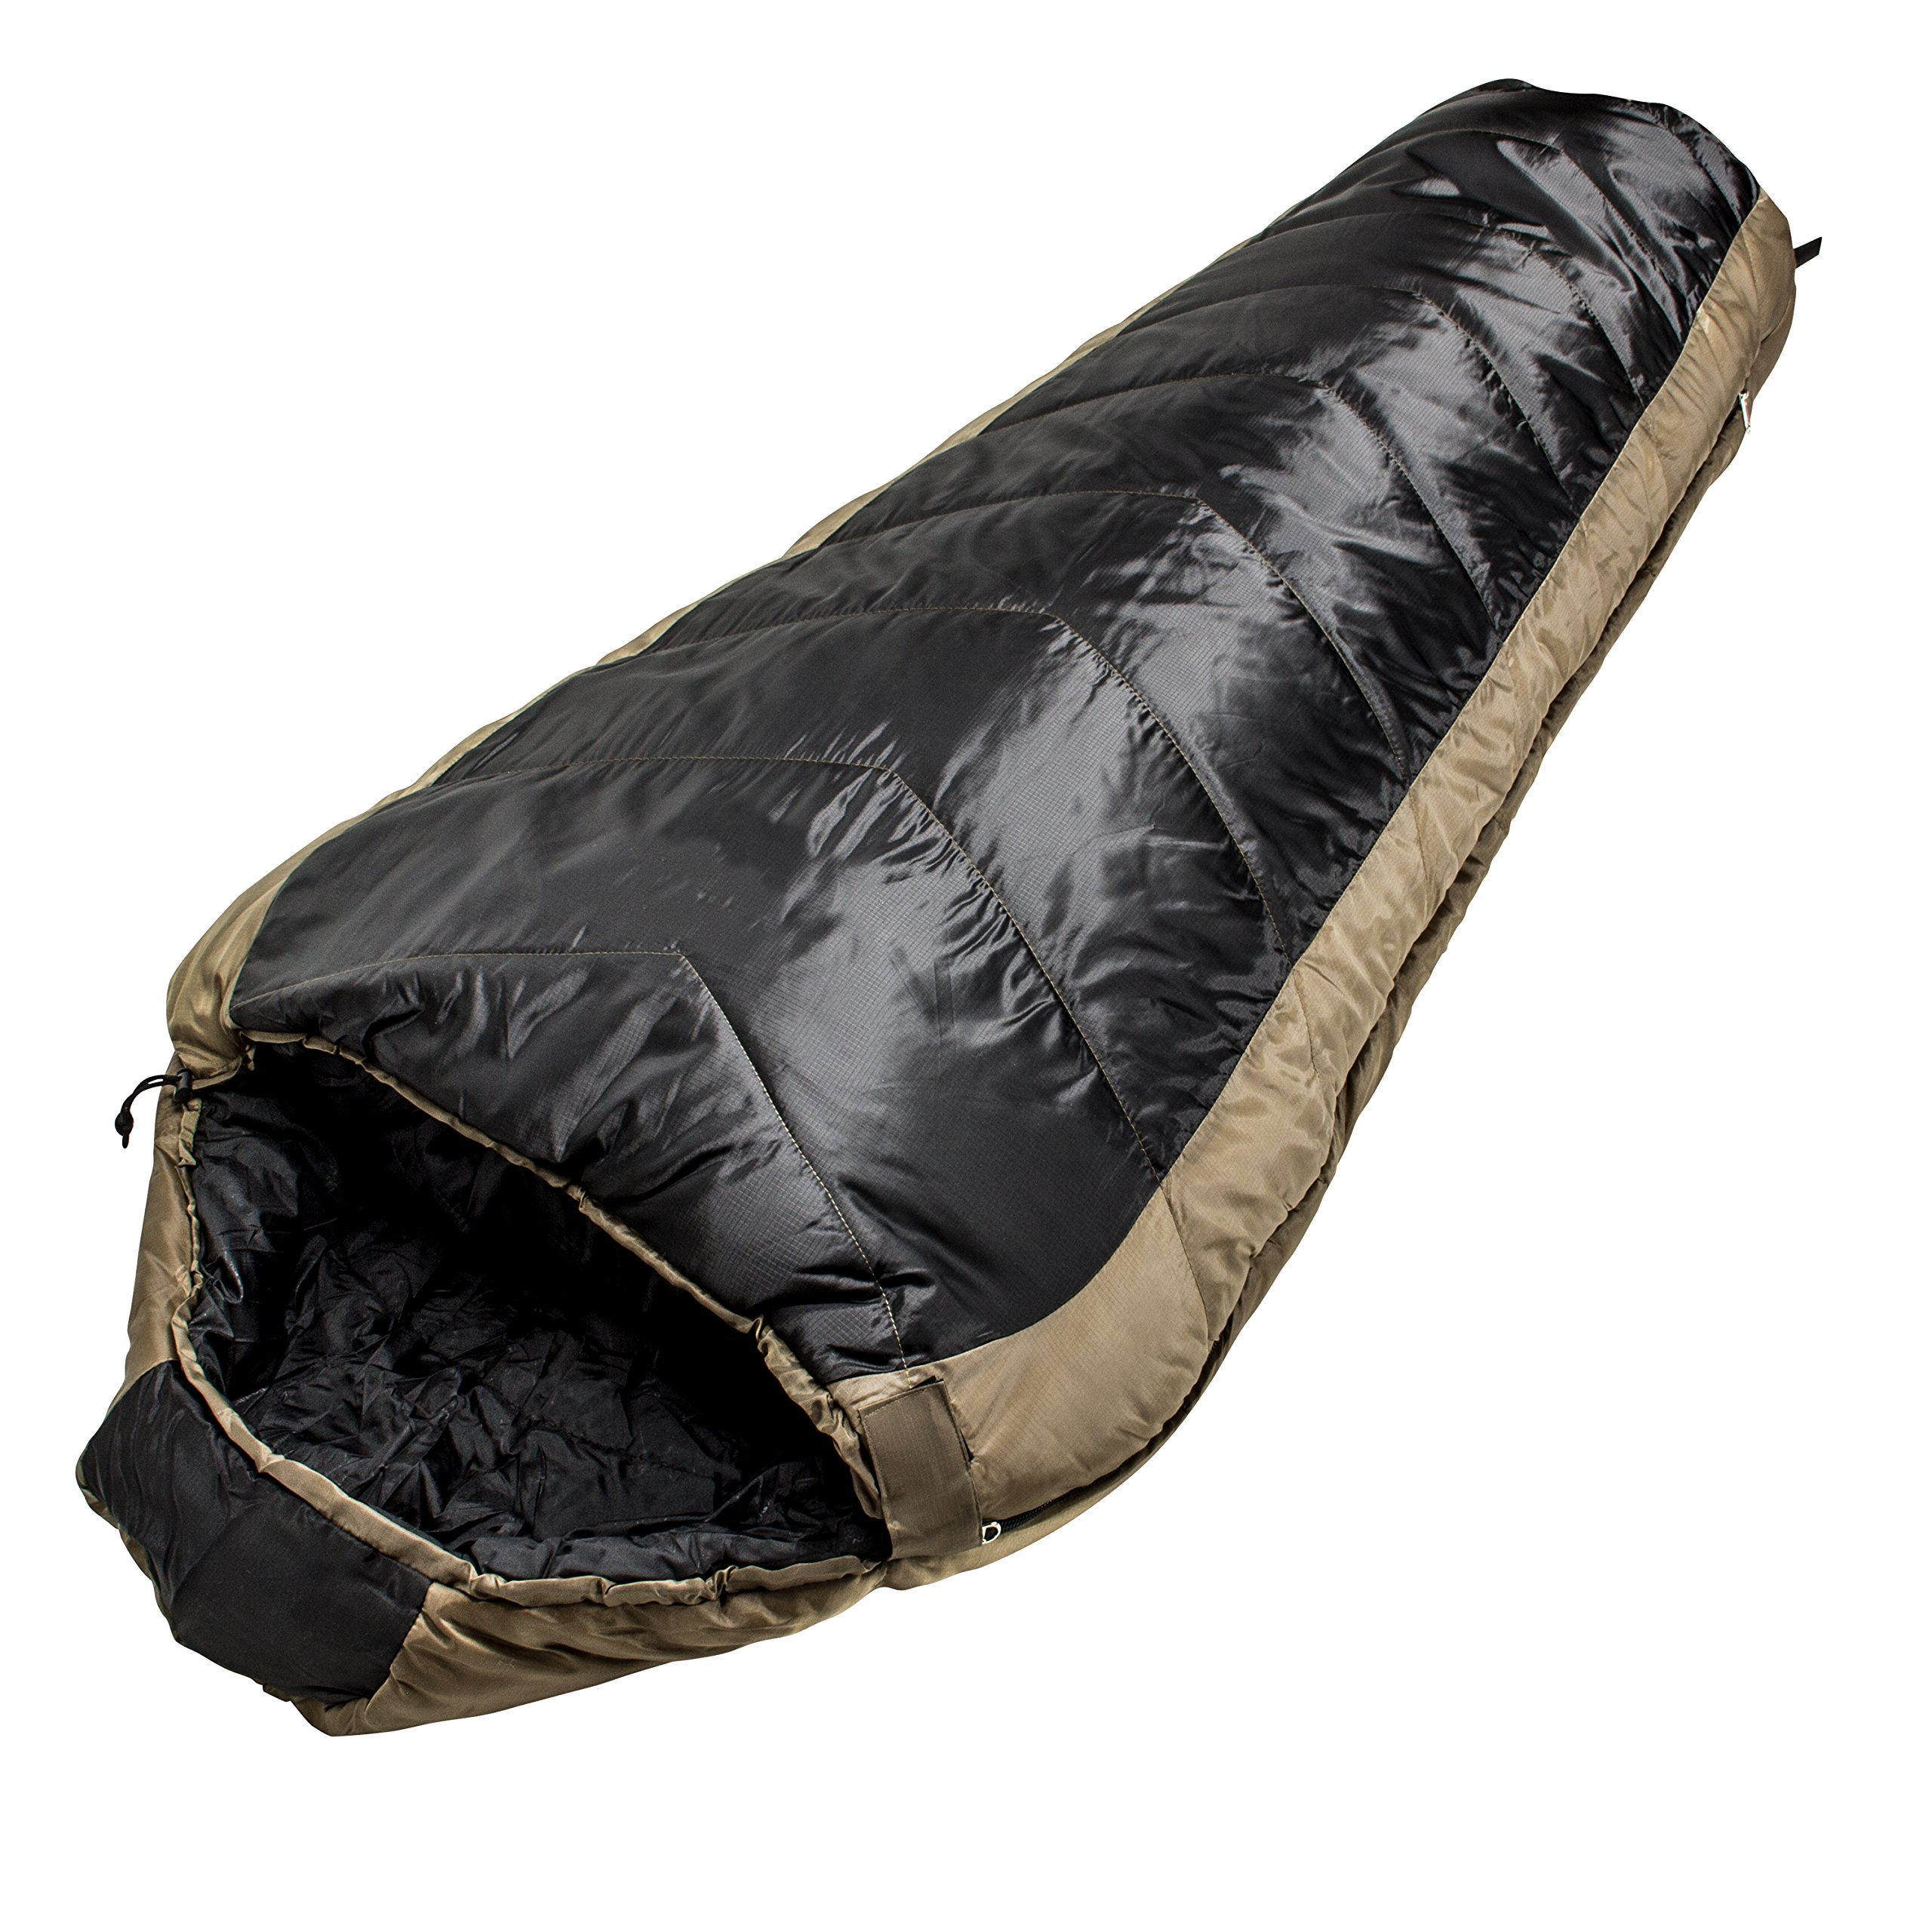 North Star Sports Tactical Coretech 3.5 Mummy Multi Layer Core Sleeping Bag with Storage Bag, Coyote